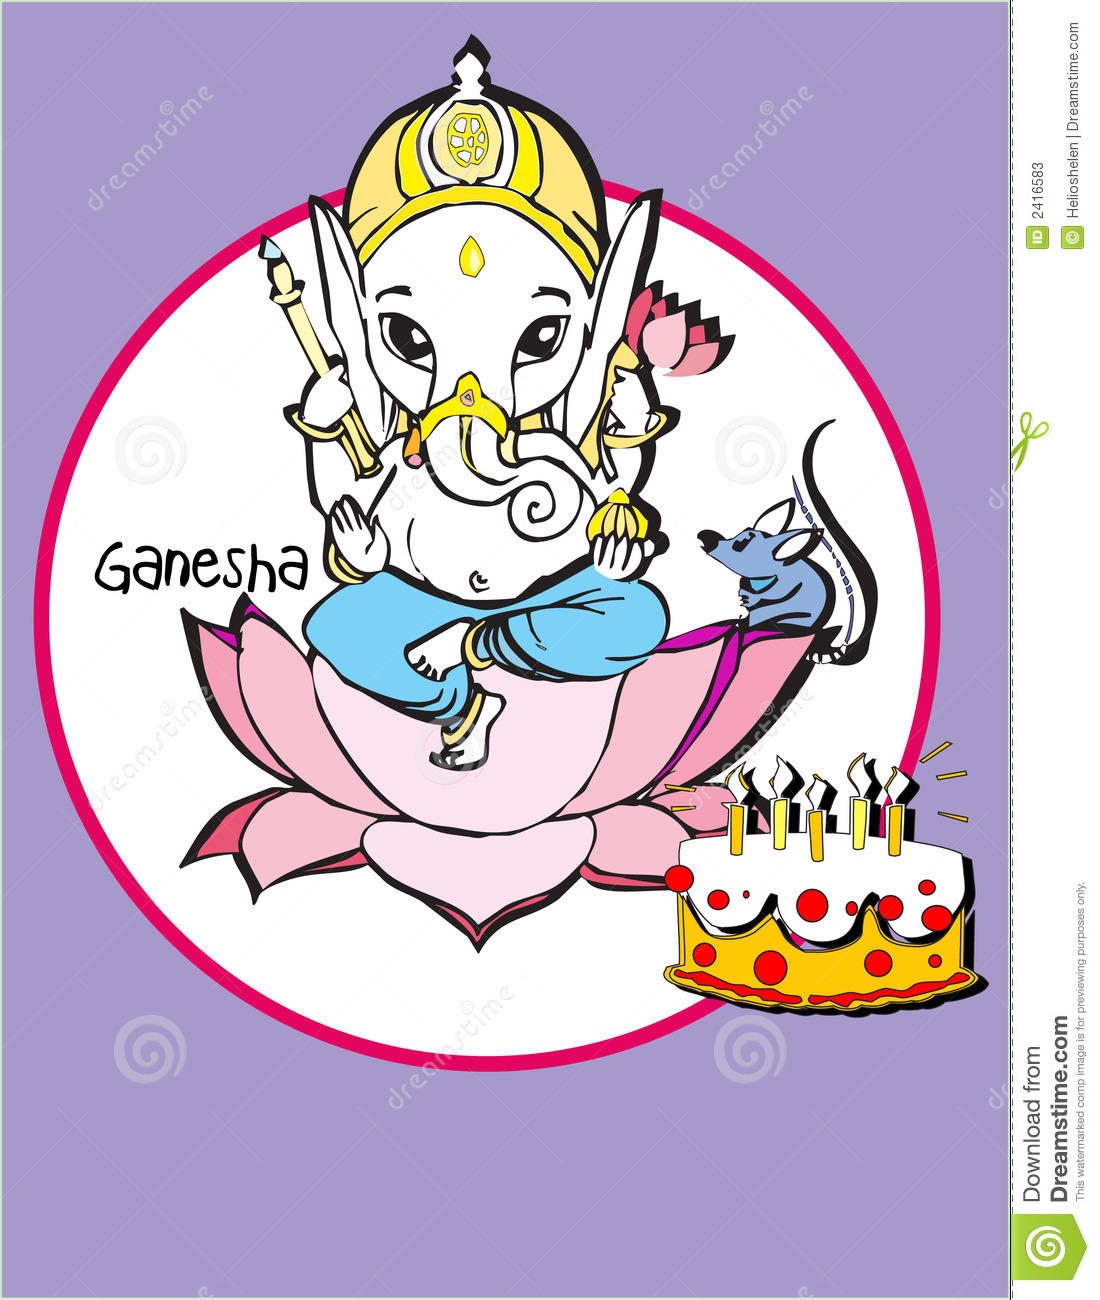 India Series Ganesh Photos Image 2416583 – Indian Birthday Cards